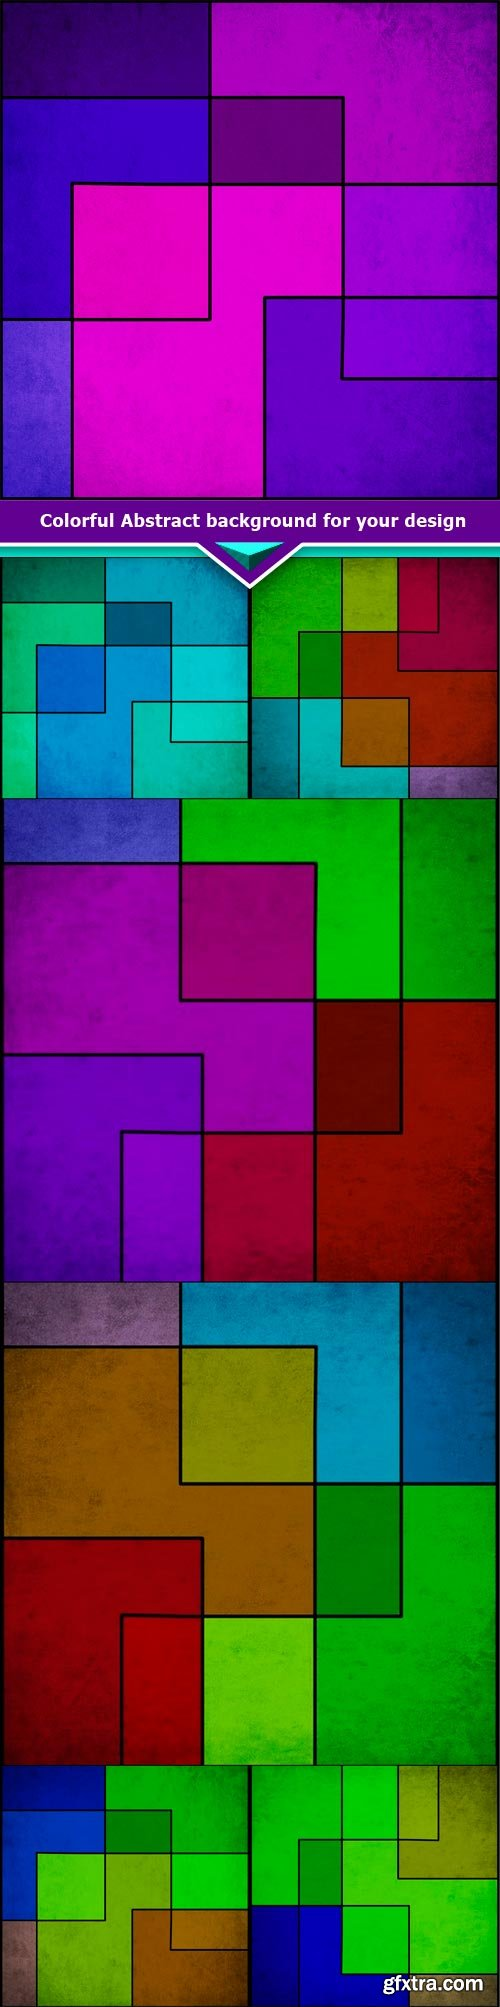 Colorful Abstract background for your design 7x JPEG